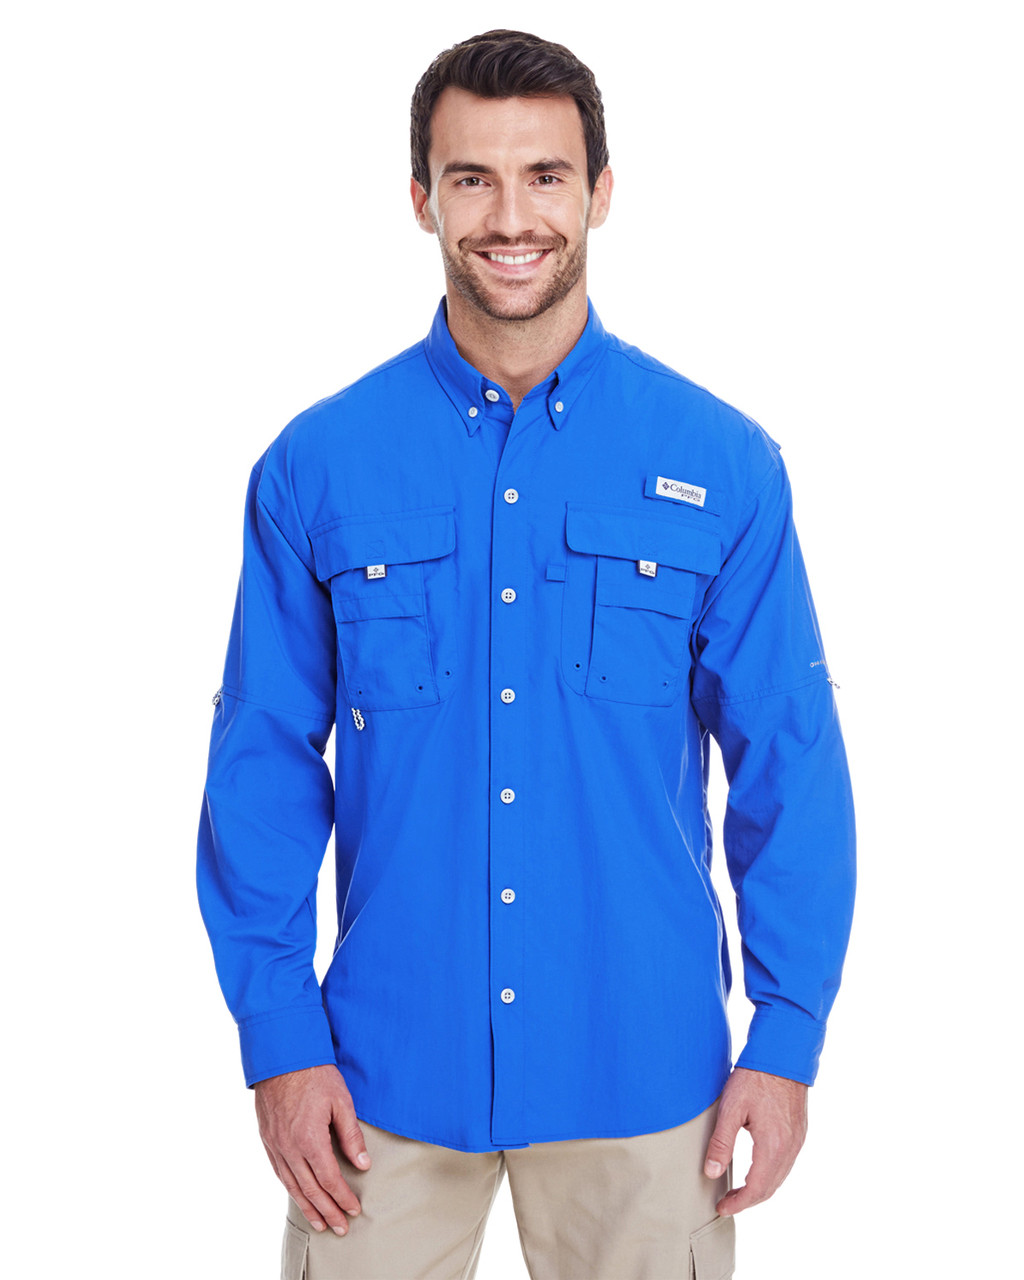 Vivid Blue -  7048 Columbia Men's Bahama™ II Long-Sleeve Shirt | BlankCLothing.ca